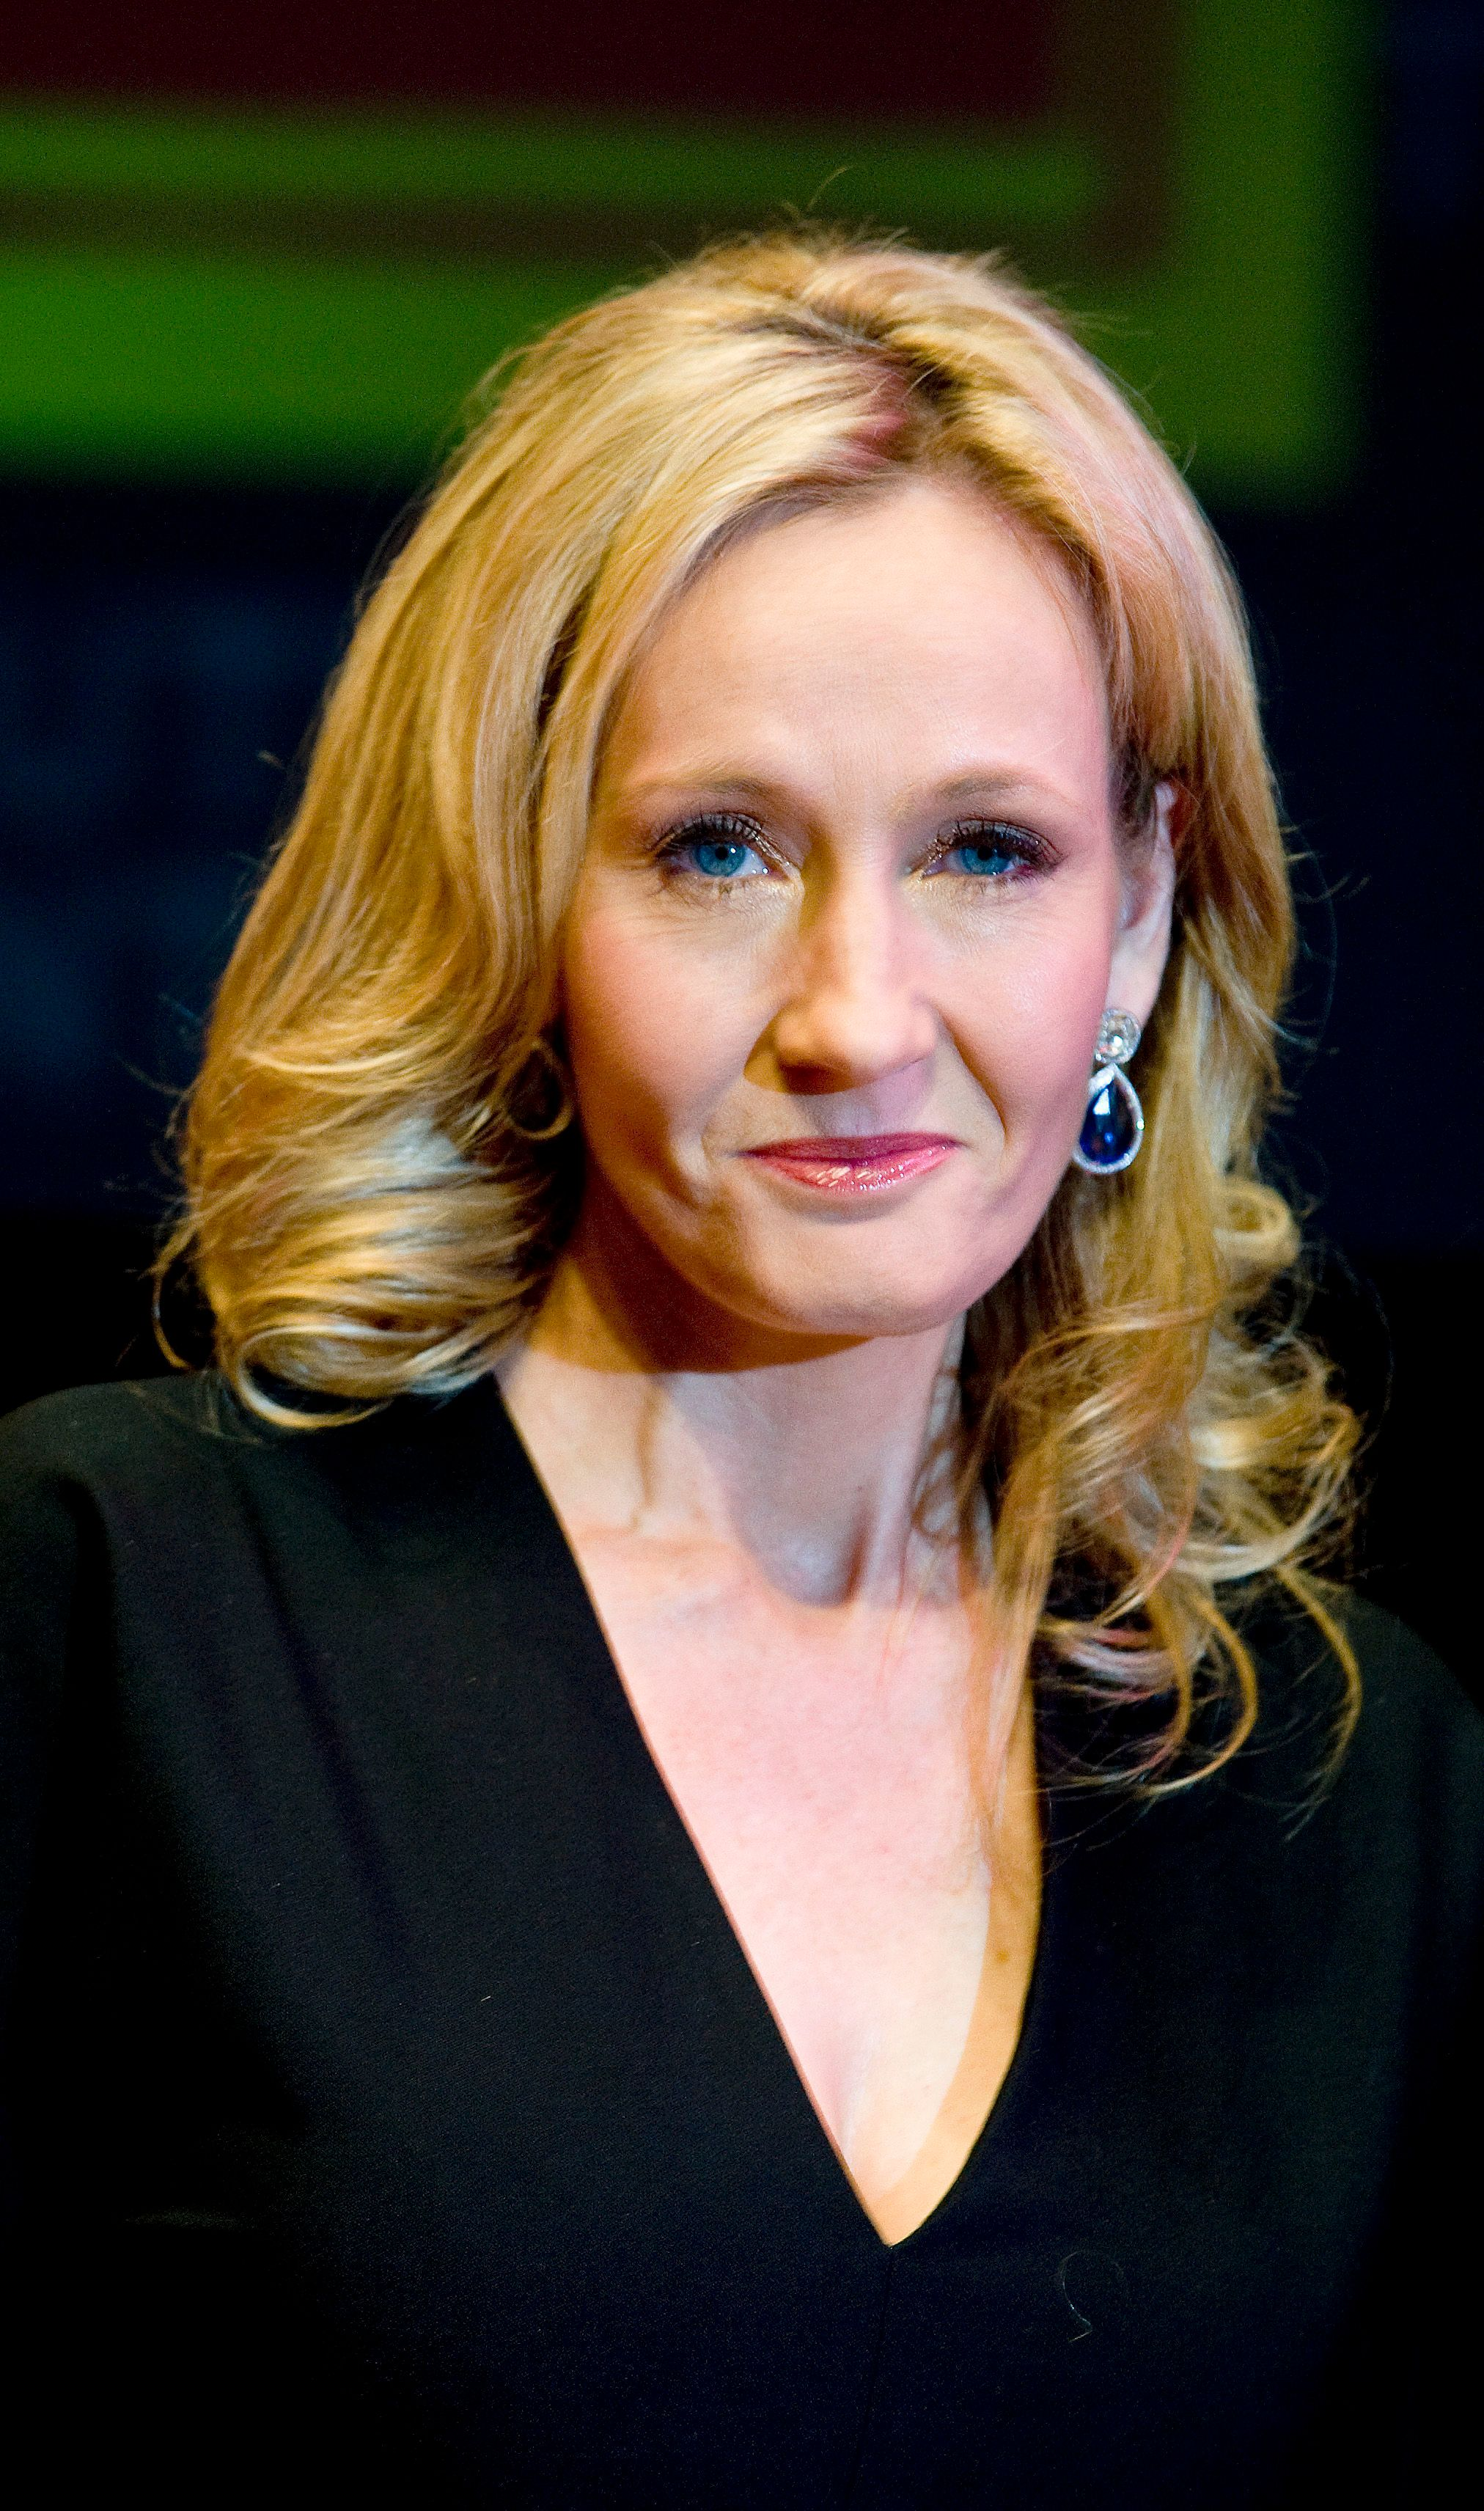 Learn how to write a best-selling novel and how to create characters as brilliantly as JK Rowling